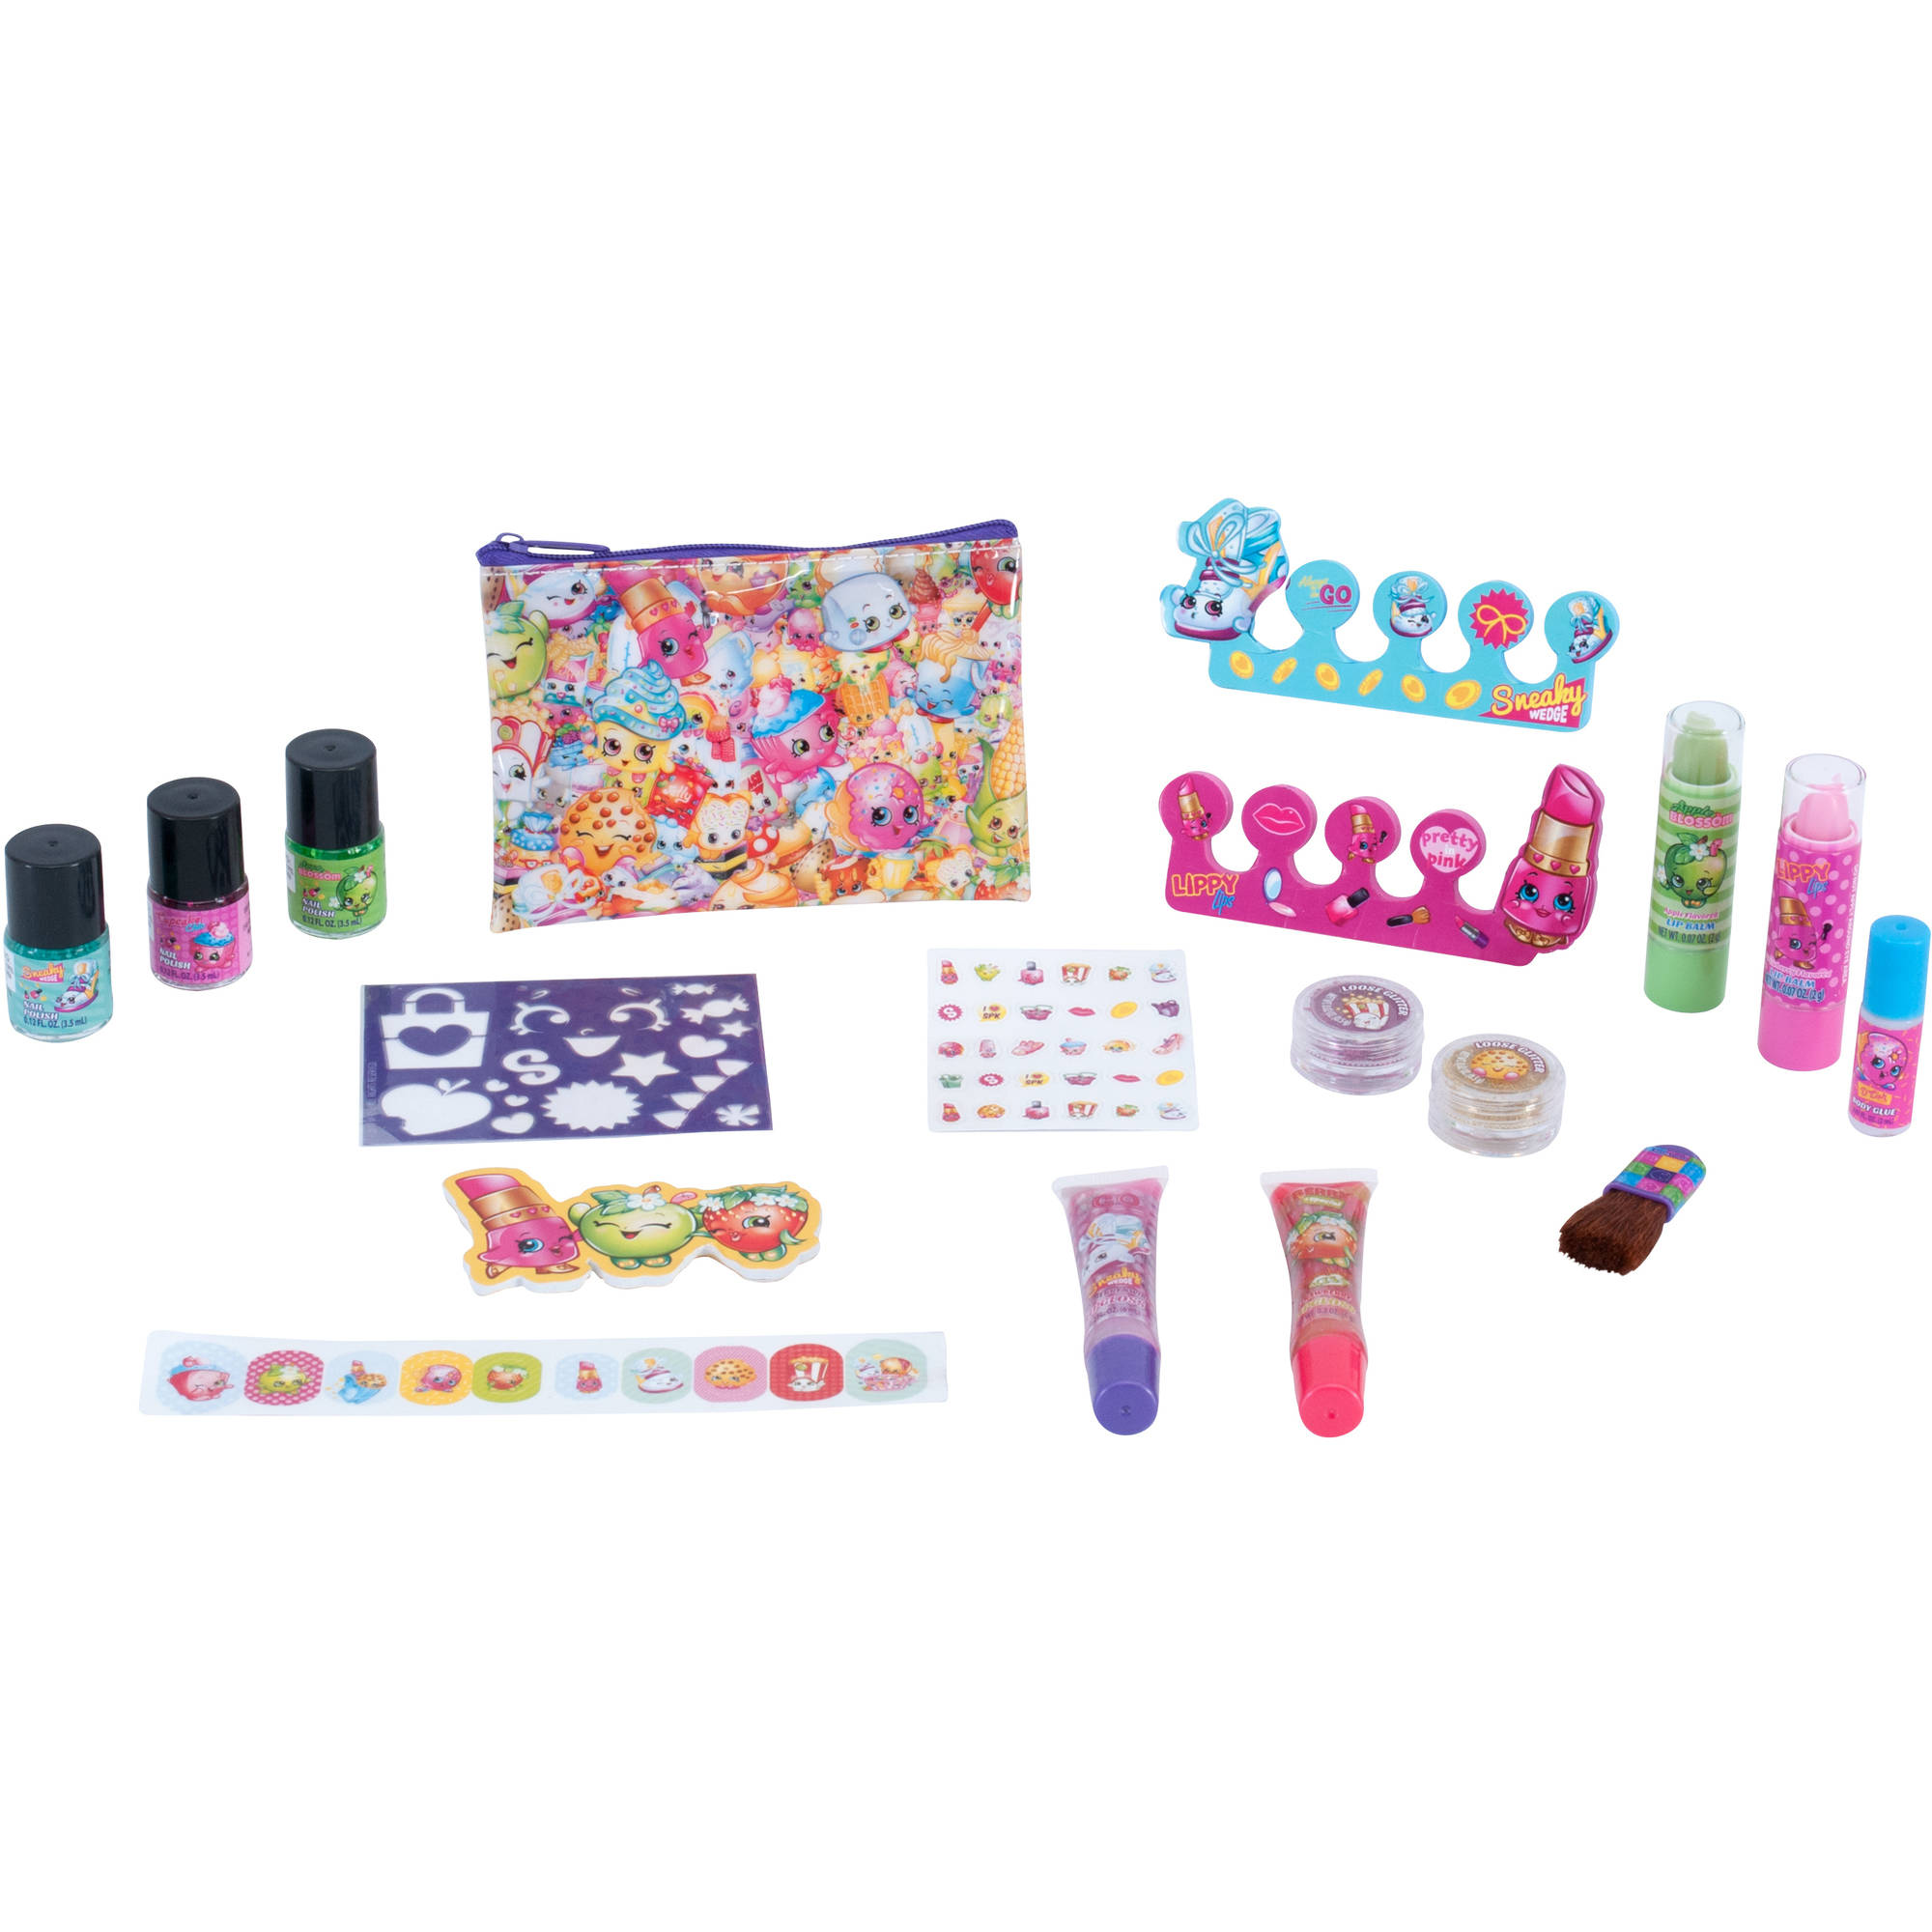 Shopkins Ultimate Beauty Collection